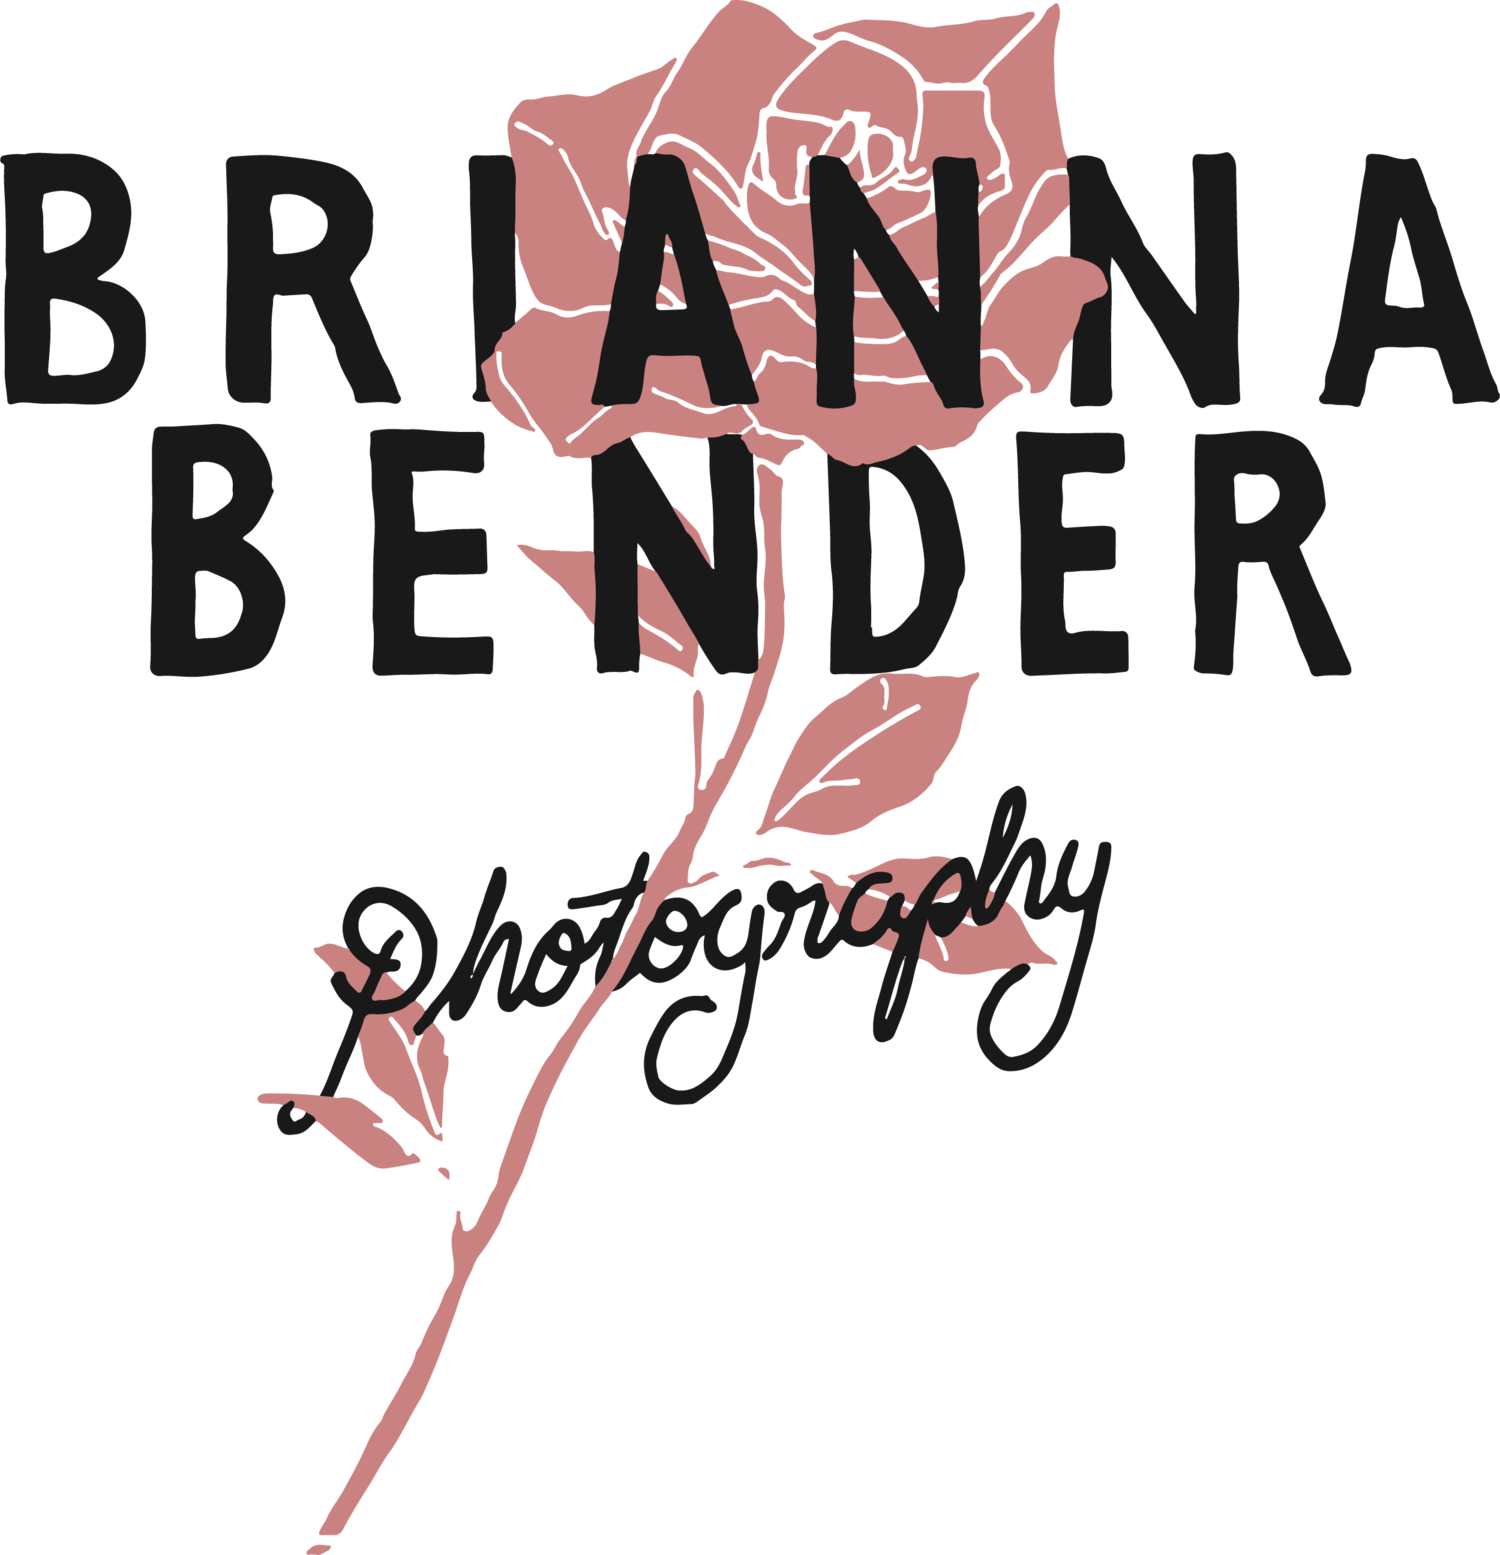 Brianna Bender Photography